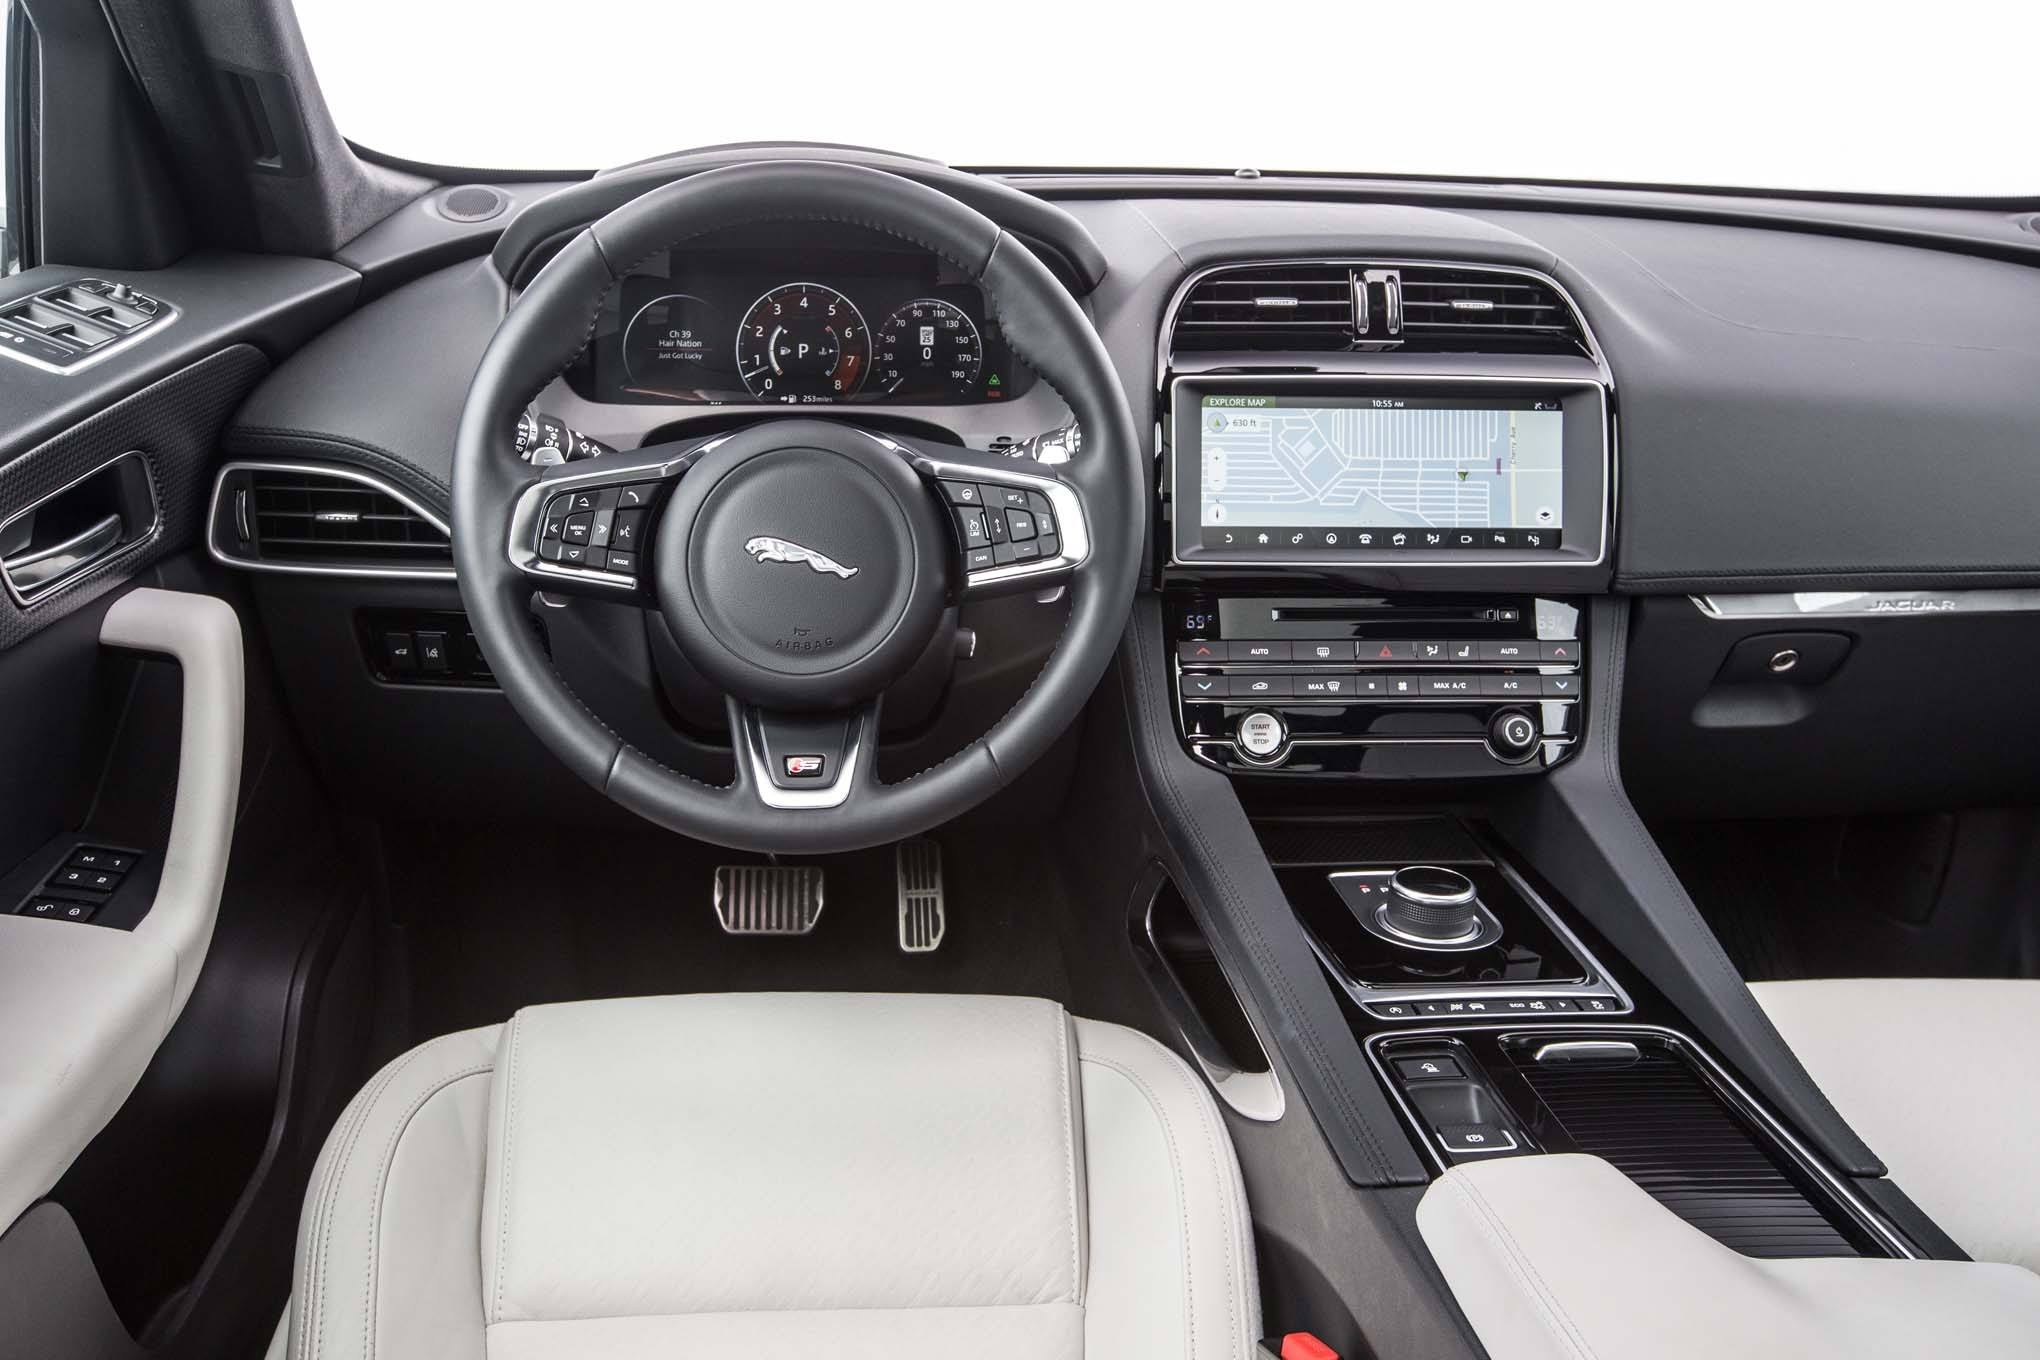 jaguar car 2017 interior - photo #48